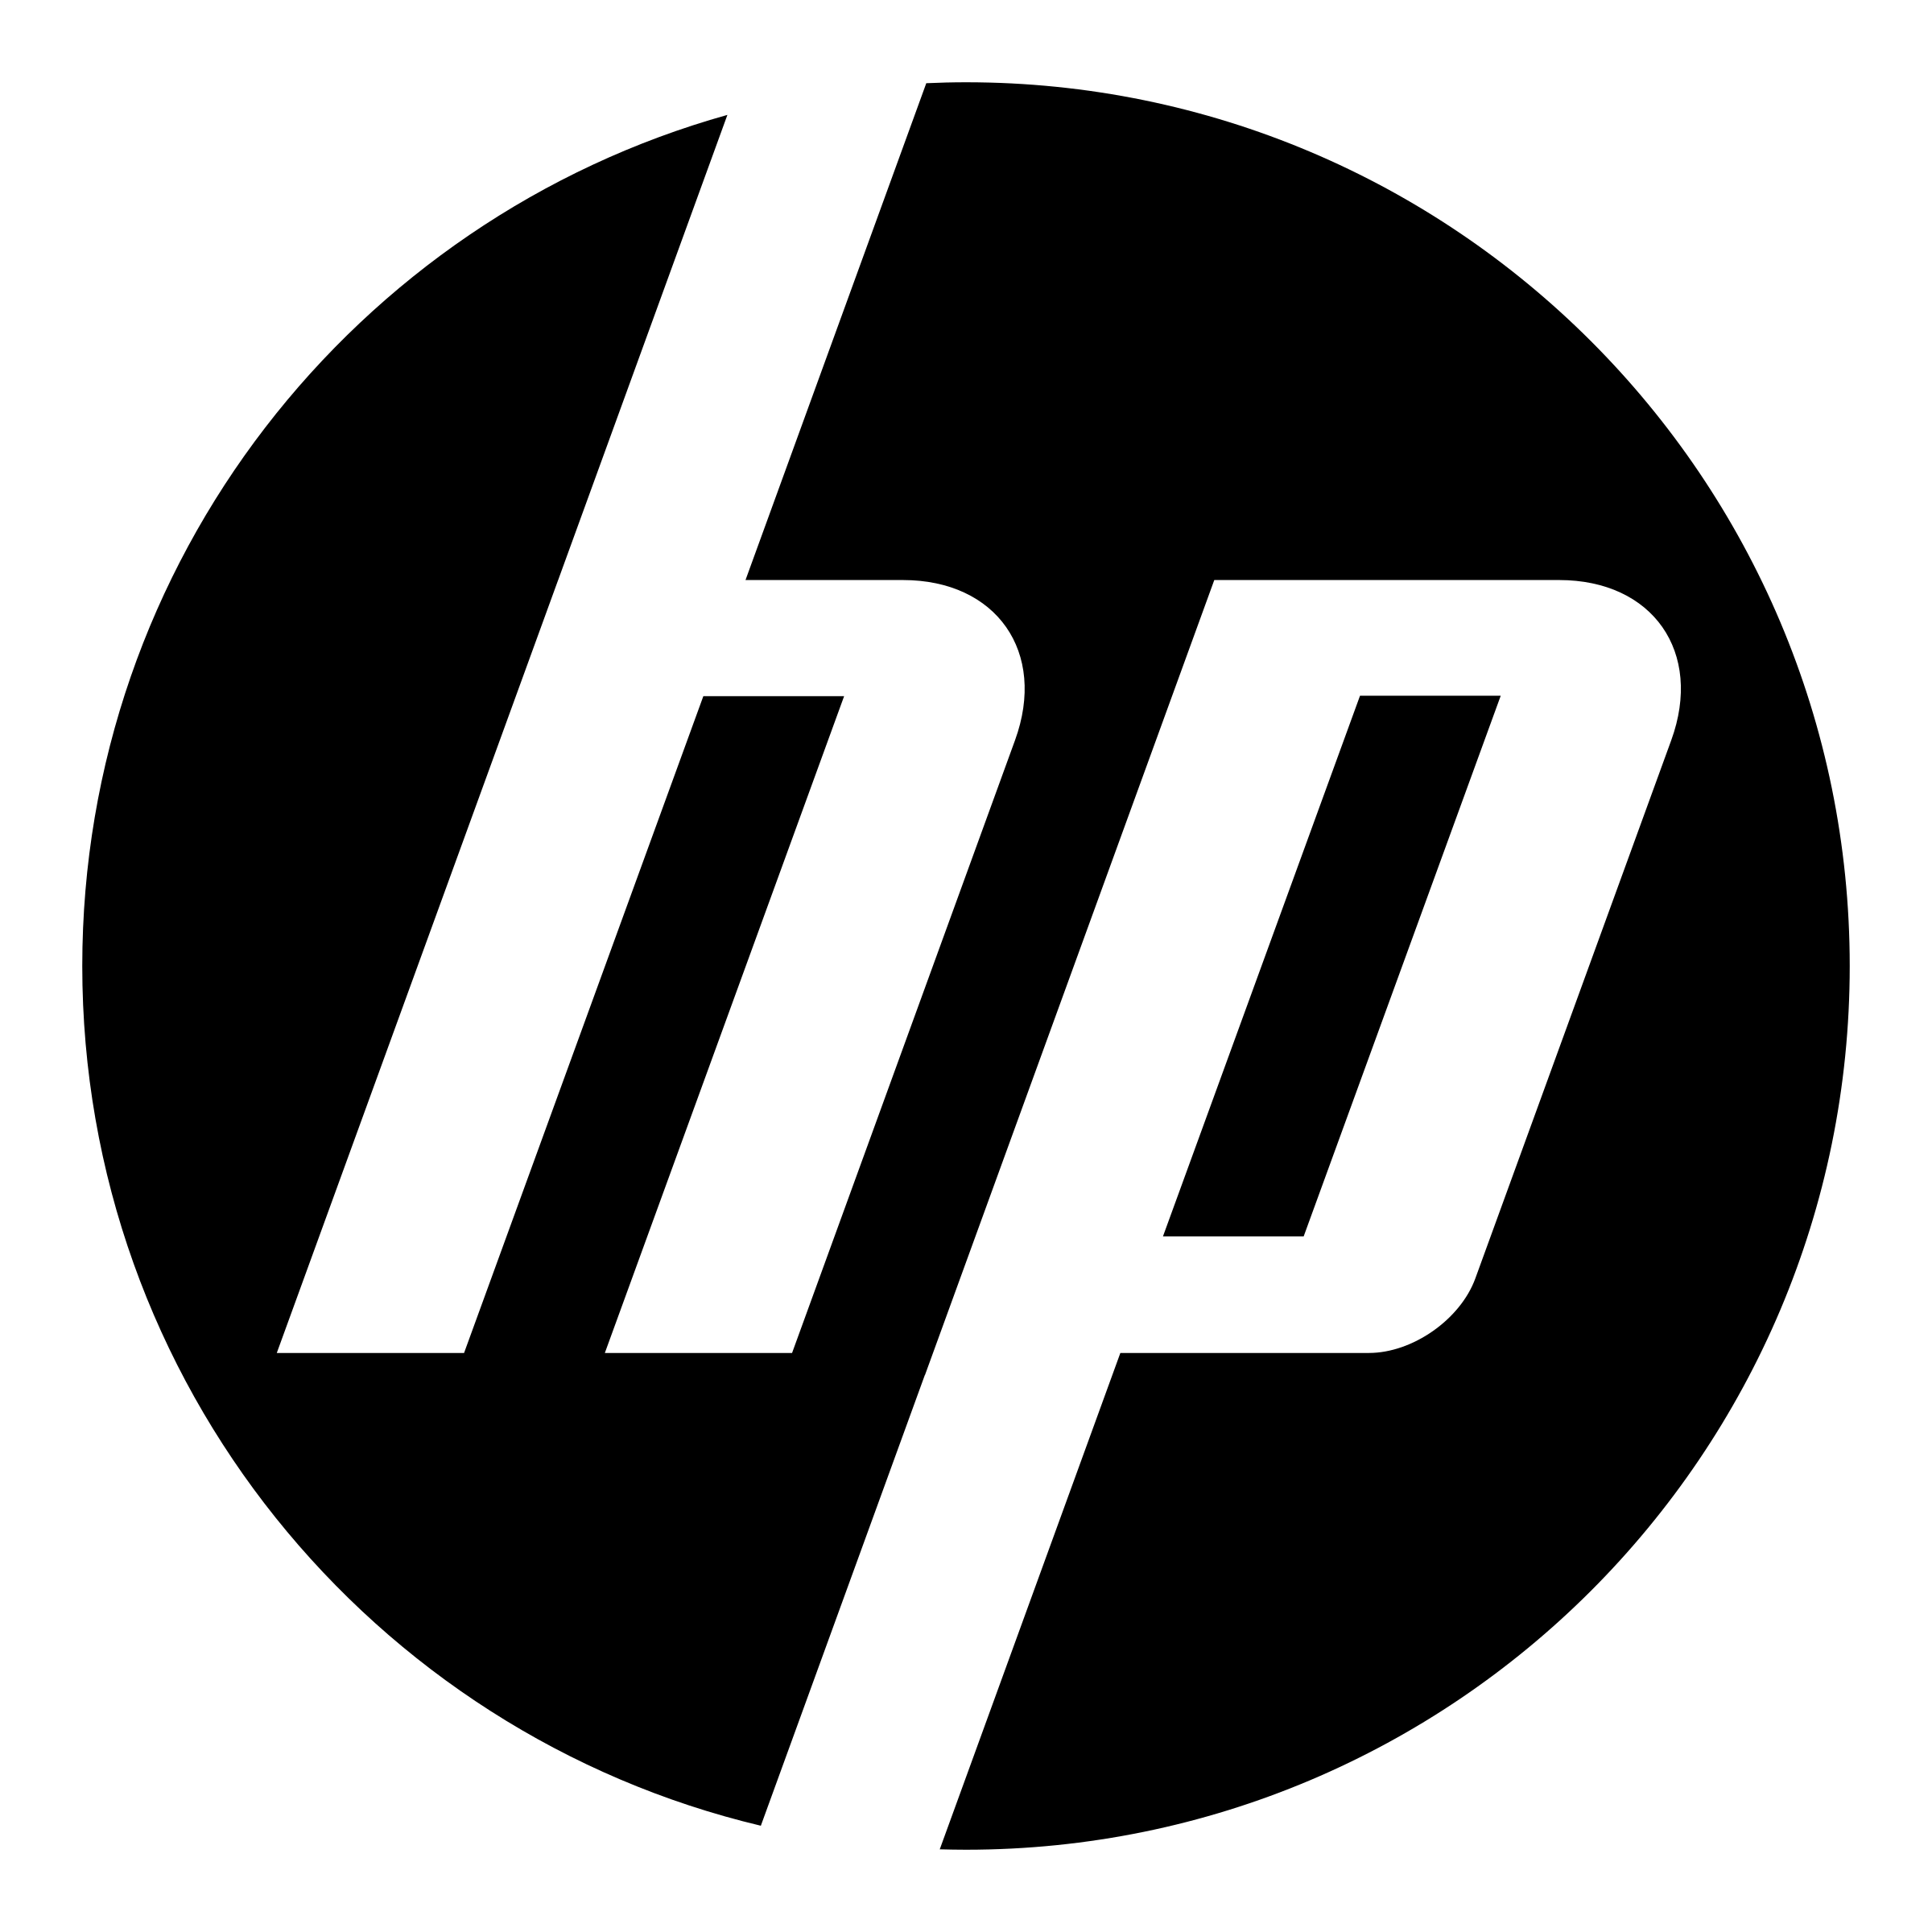 hewlett-packard-logo-black-and-white.png